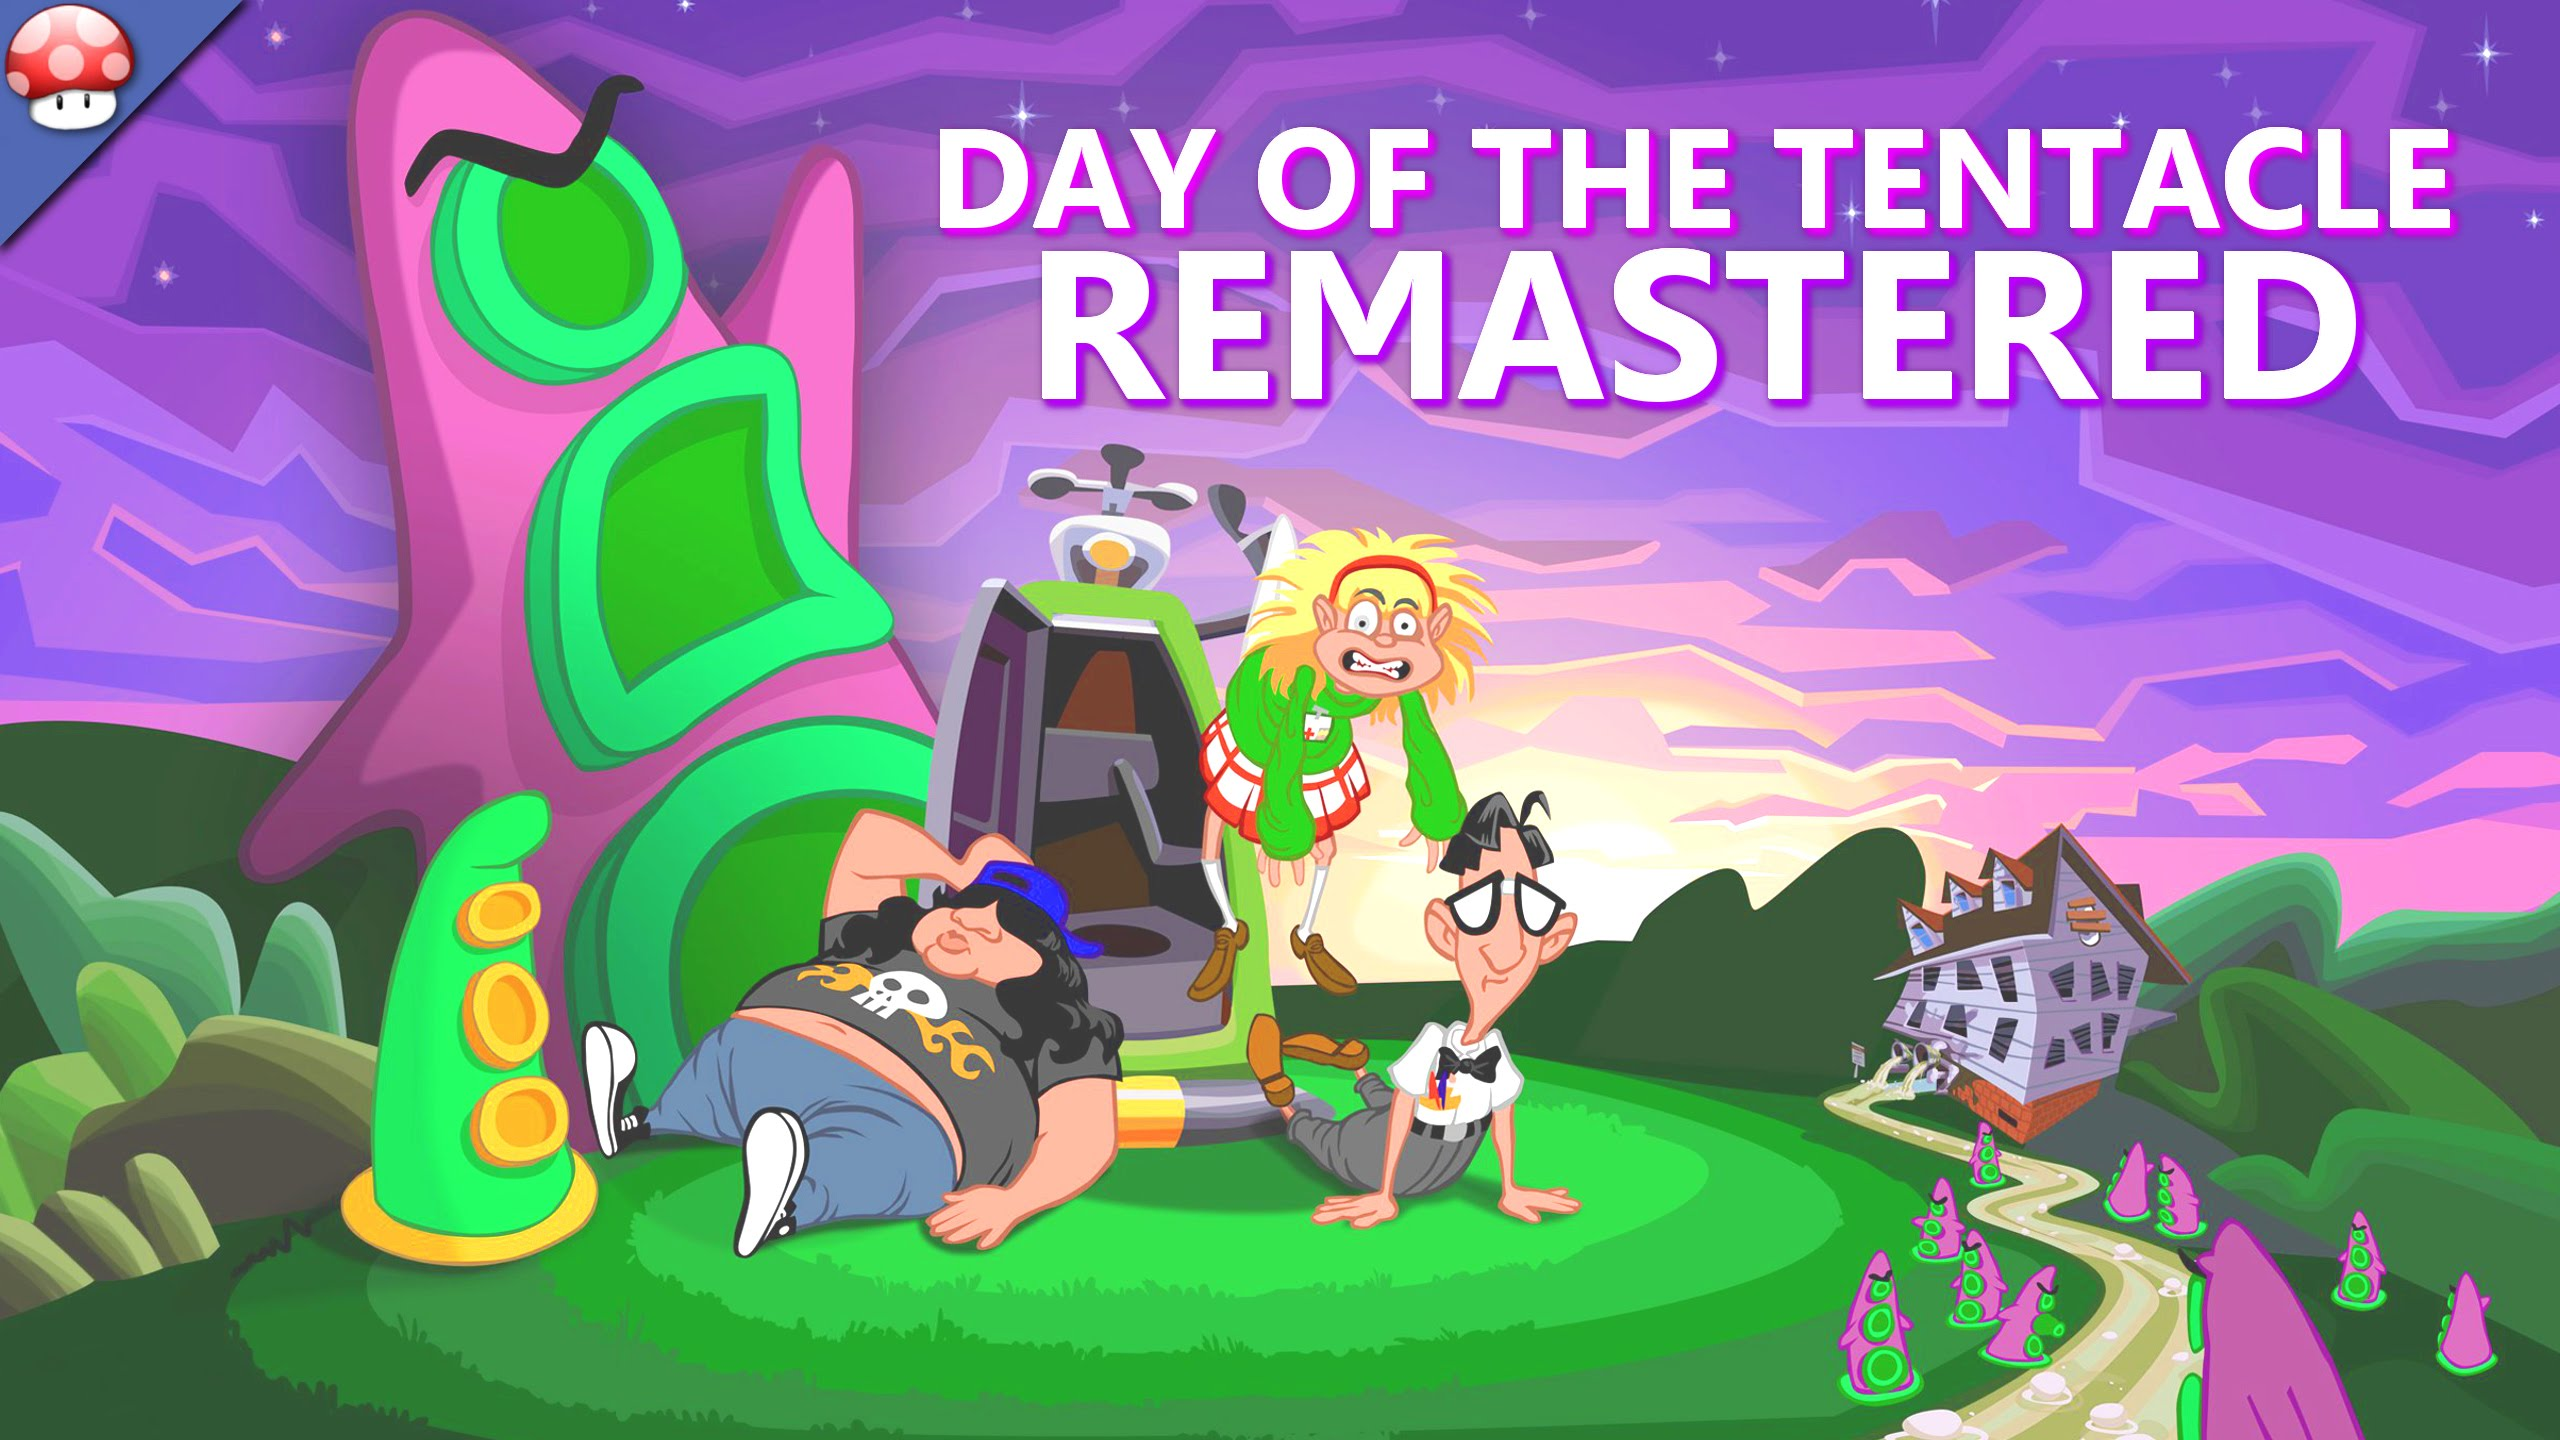 Day of the Tentacle Remastered (Steam Gift/ROW) HB link